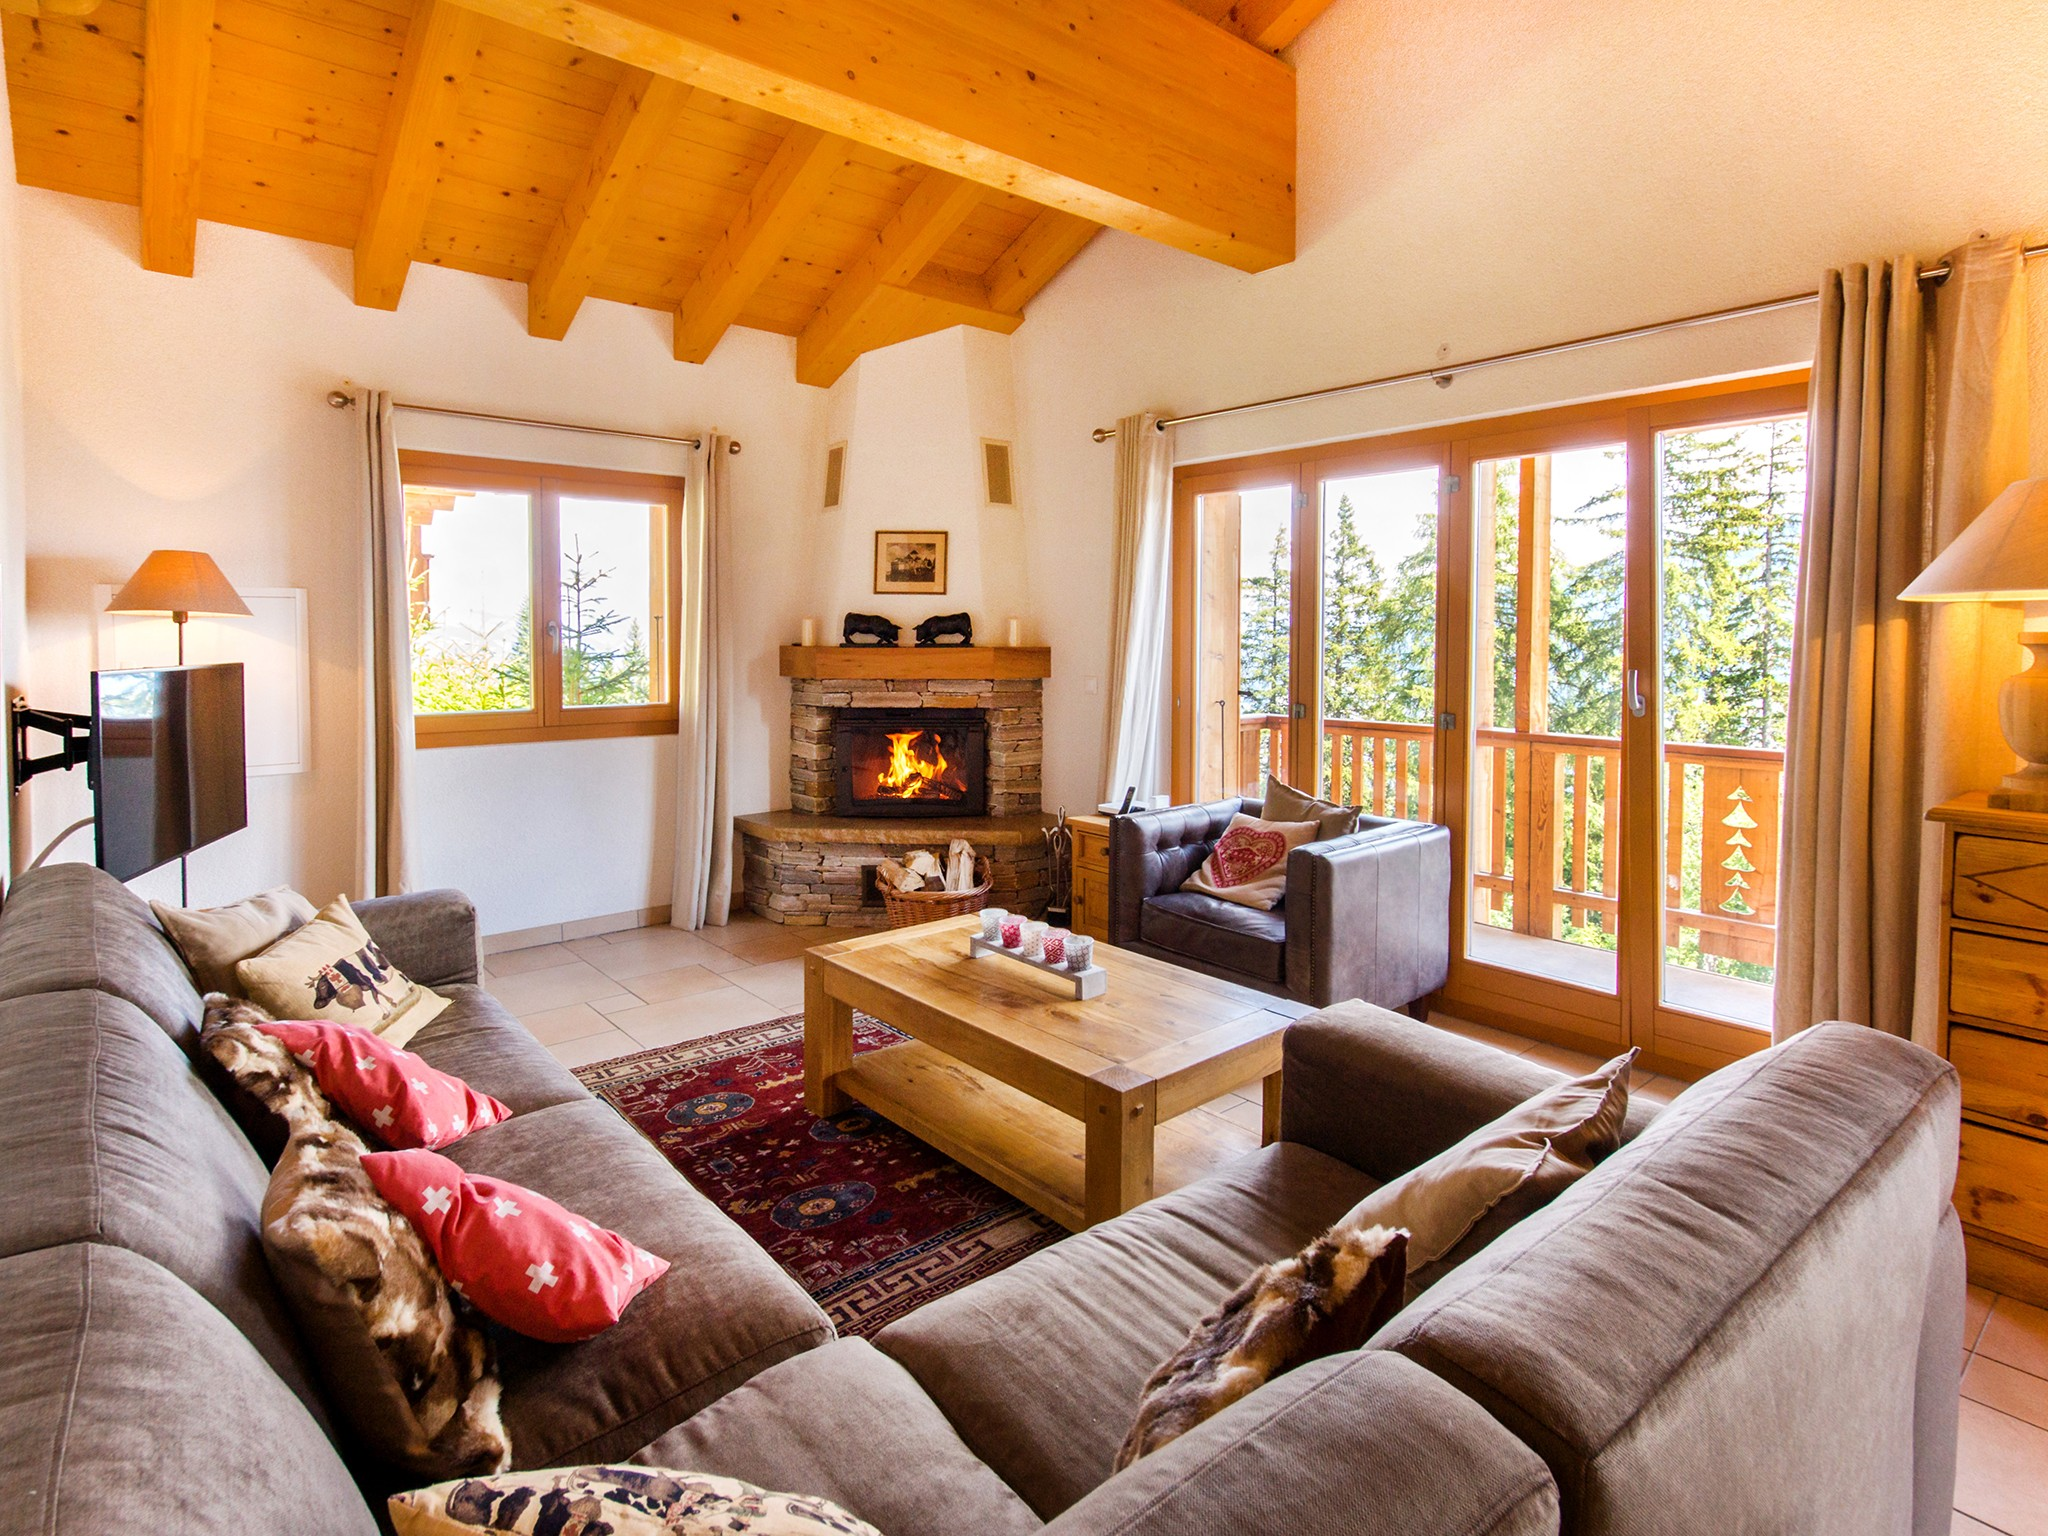 Chalet Collons 1850 - living room